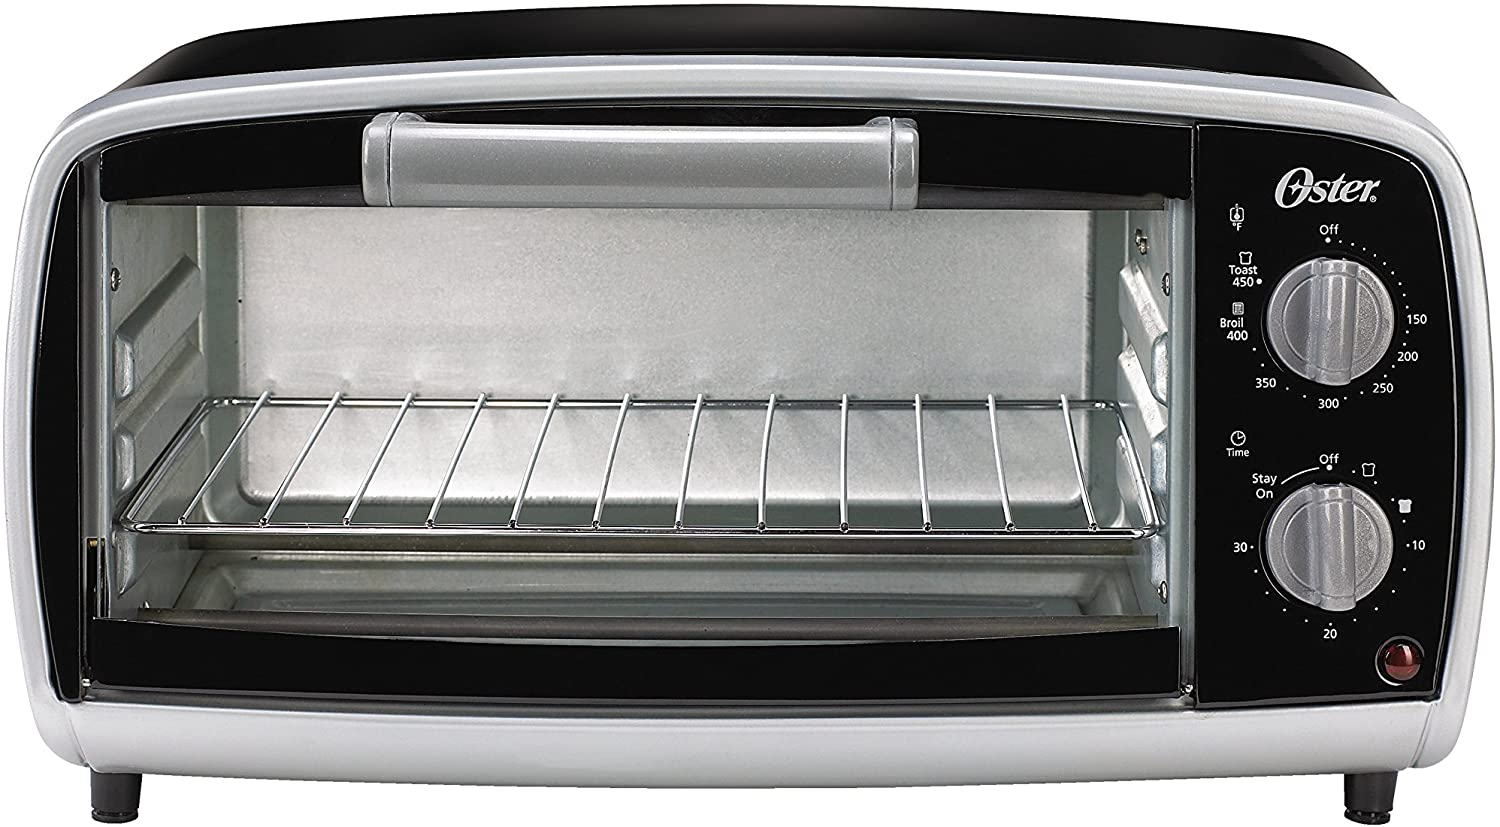 top 10 best toaster ovens 2021 best toaster reviews herstylecode Top 10 Best Toaster Ovens 2021 - Best Toaster Reviews